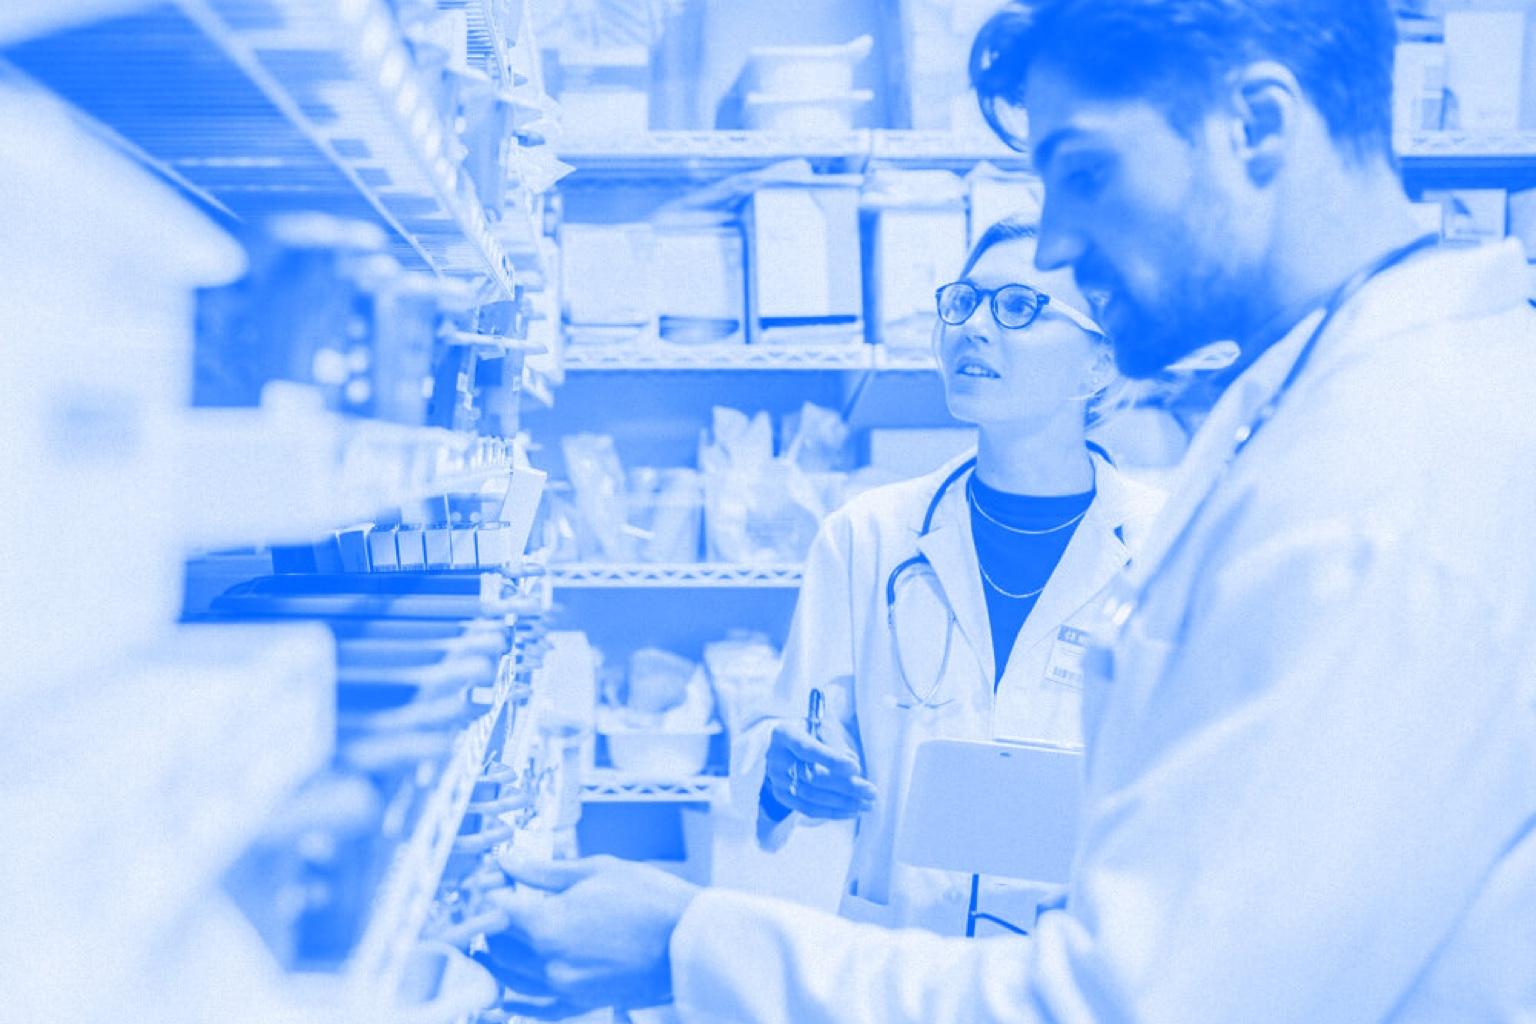 A pharmacy technician and pharmacist work together while looking at shelves of medicine. Blue-tinted photograph.